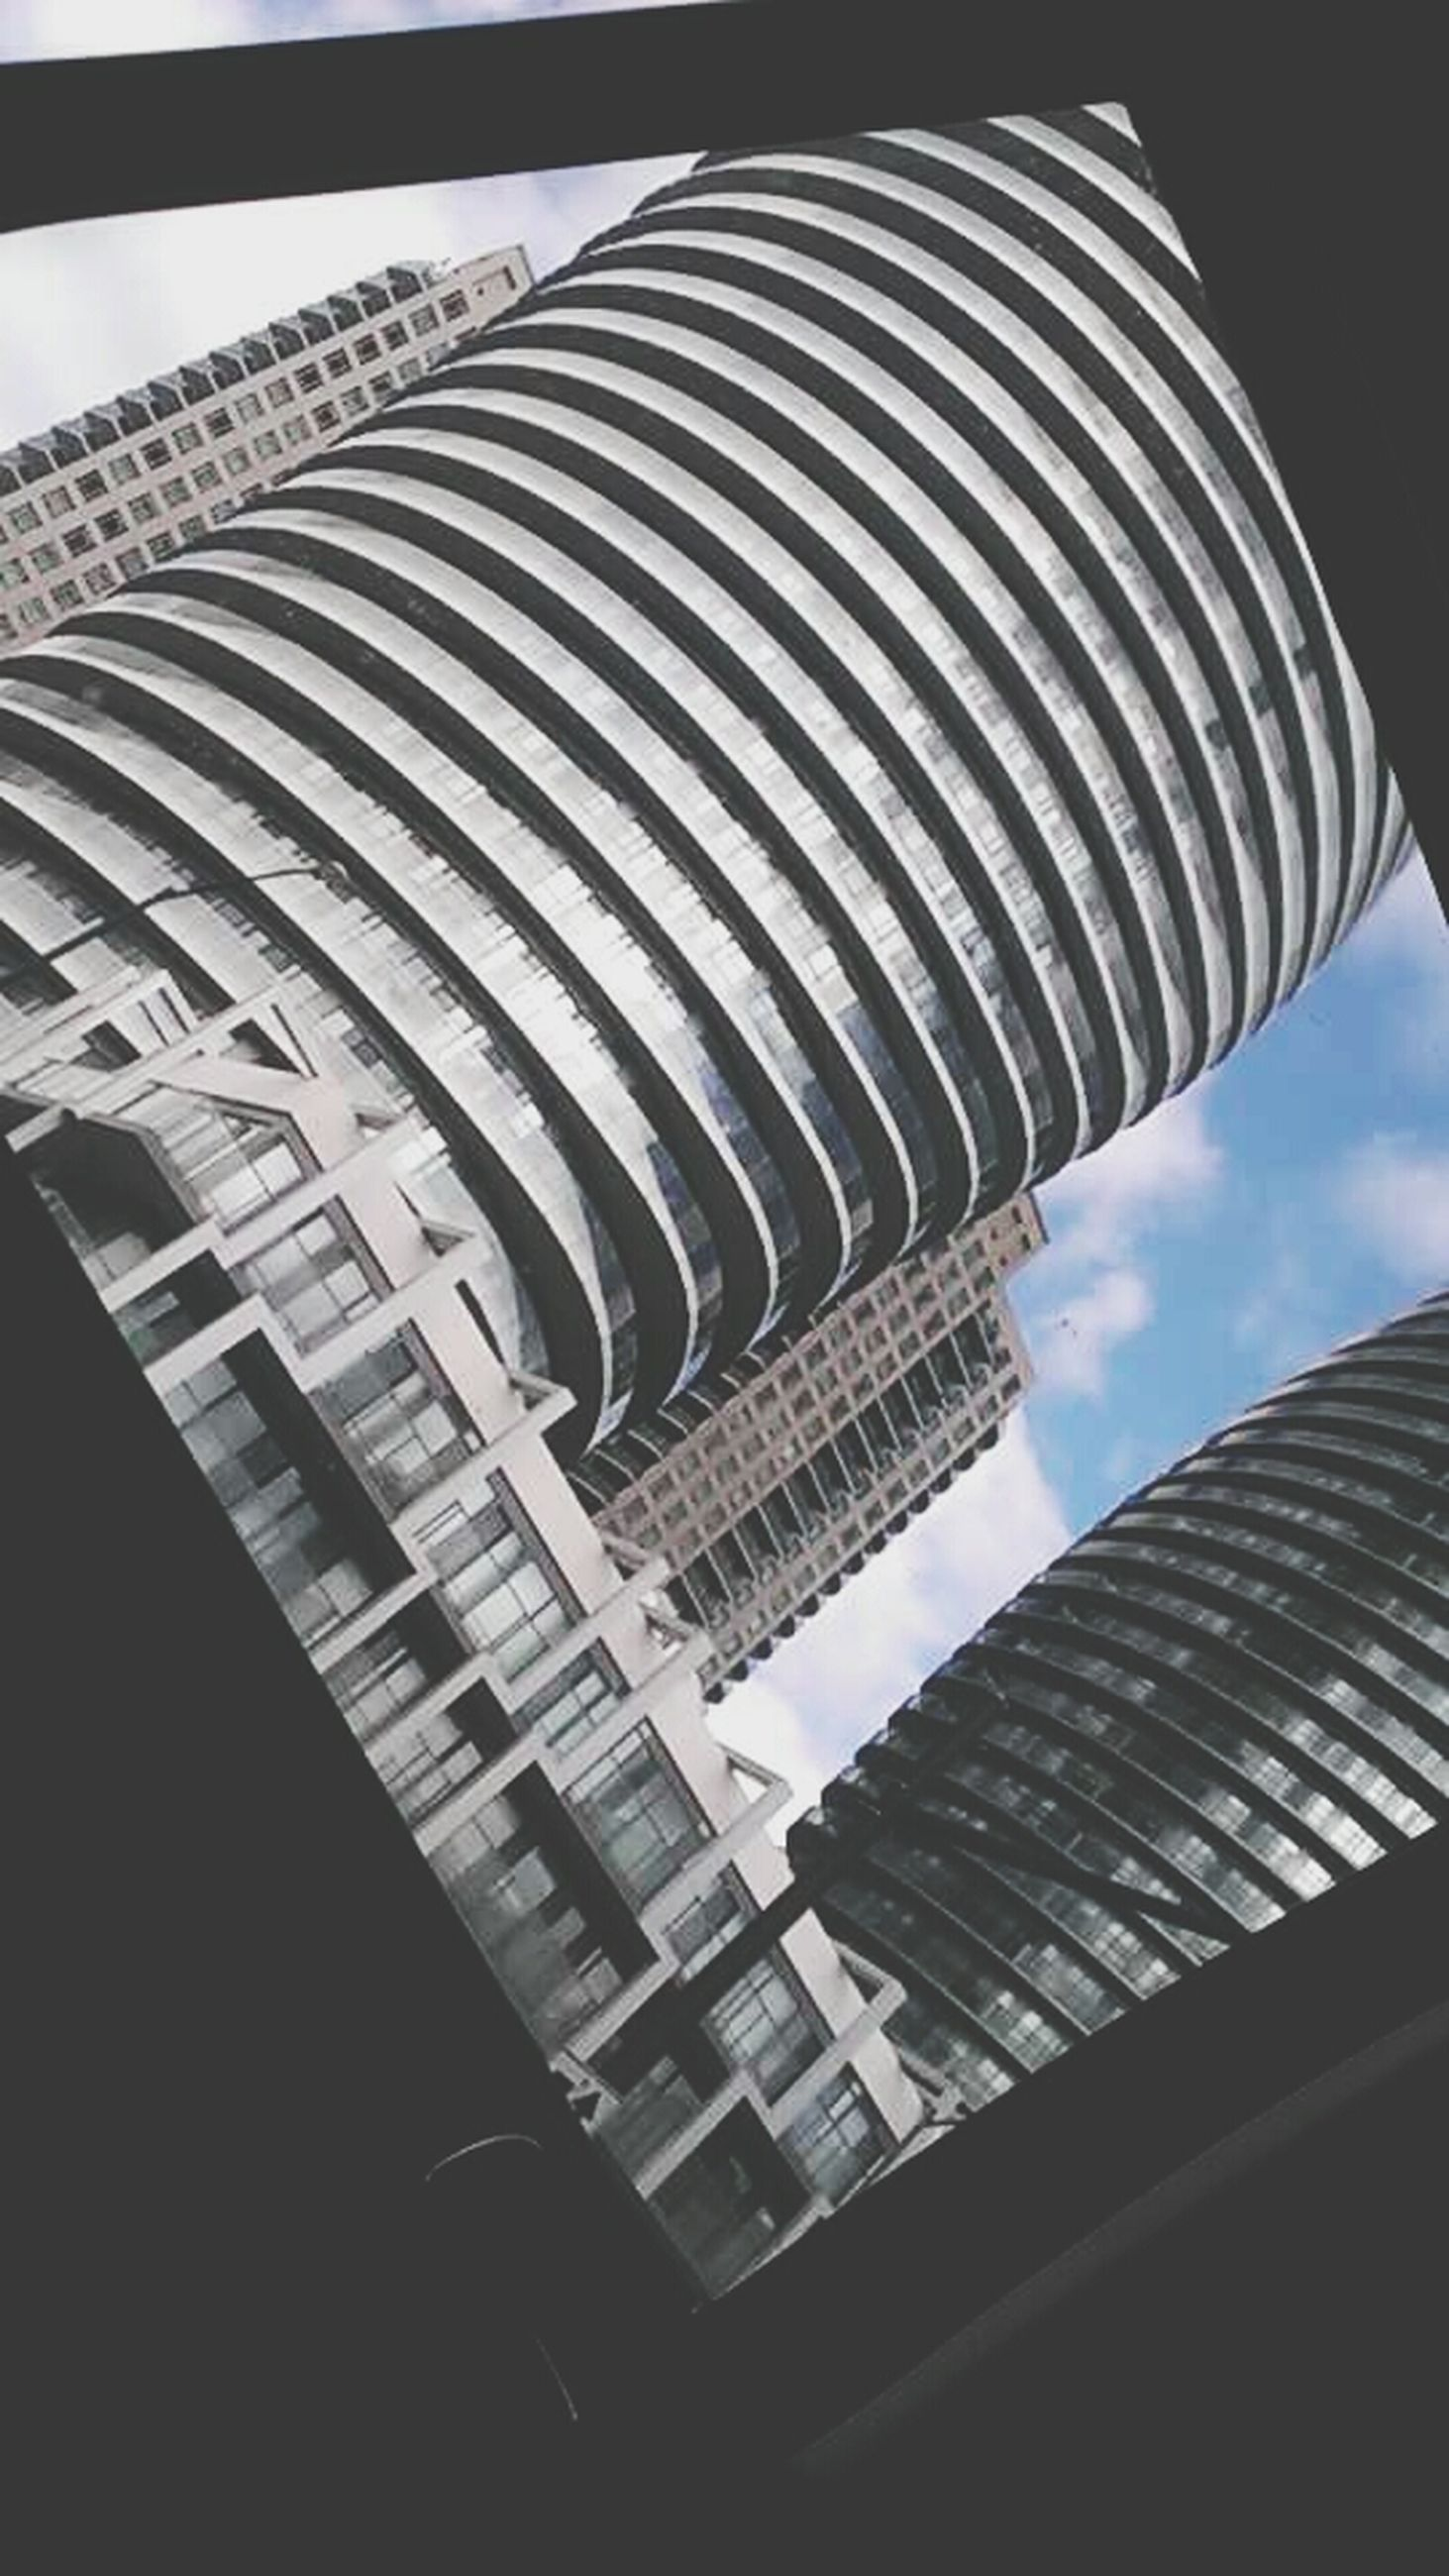 architecture, built structure, building exterior, low angle view, modern, tall - high, skyscraper, famous place, tower, city, international landmark, travel destinations, sky, capital cities, architectural feature, office building, tourism, travel, day, no people